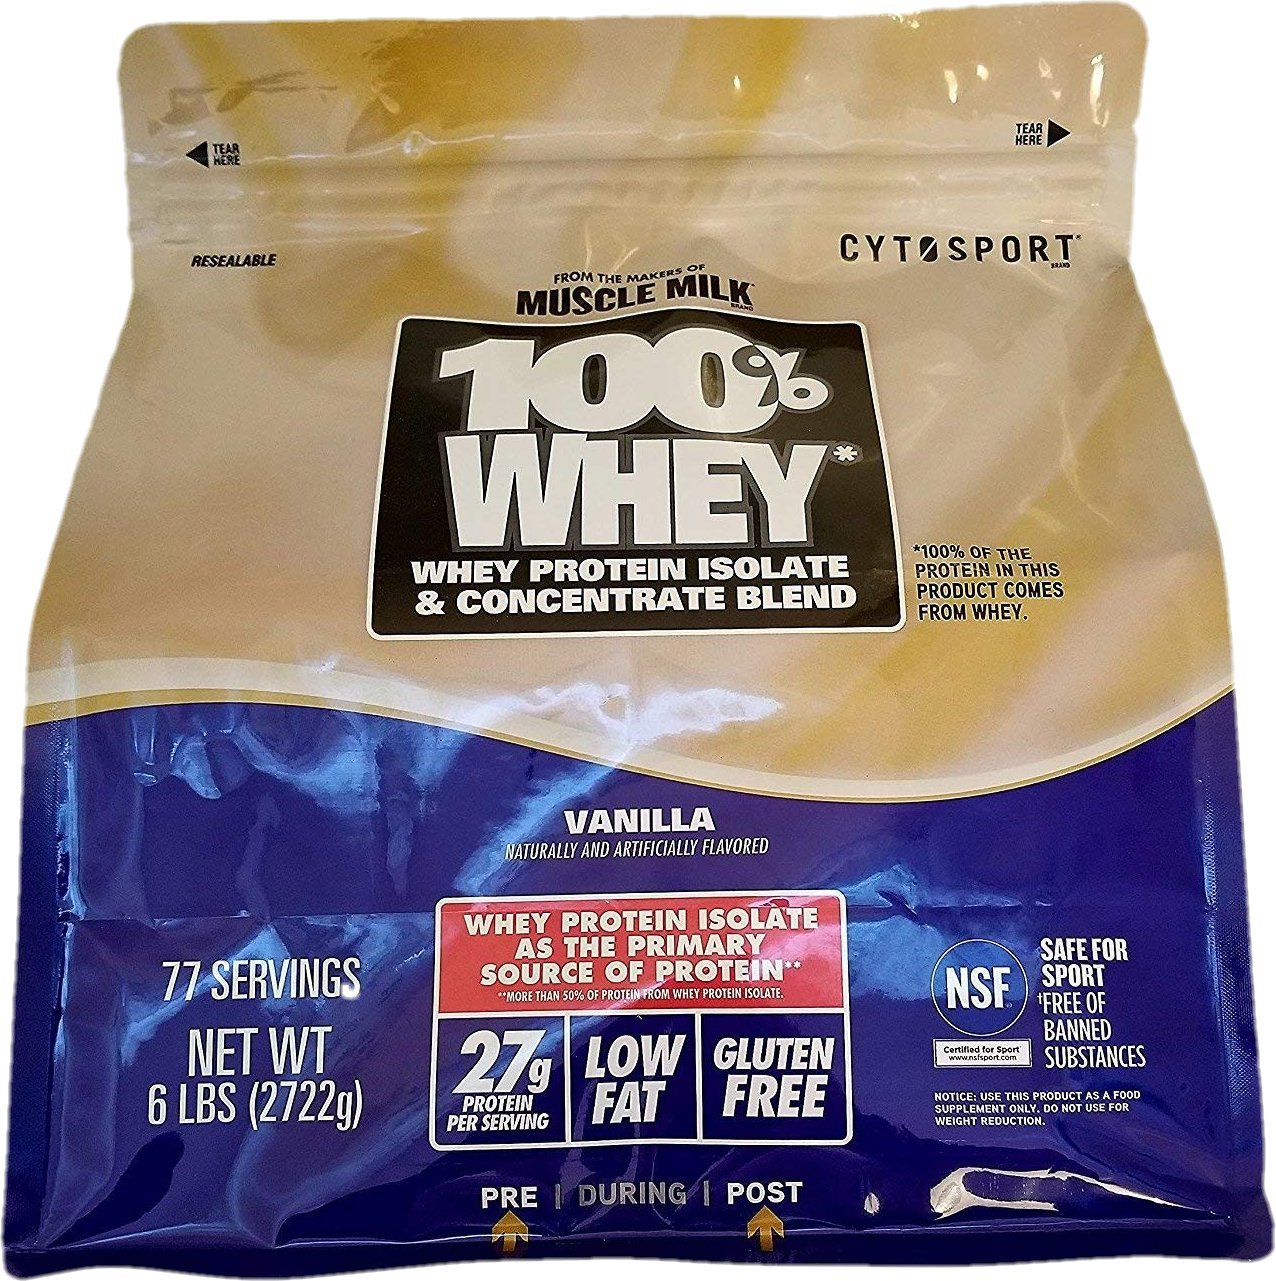 Cytosport 100 Whey Protein Powder, Vanilla, 6 Lb. Bag From the Makers of Muscle Milk